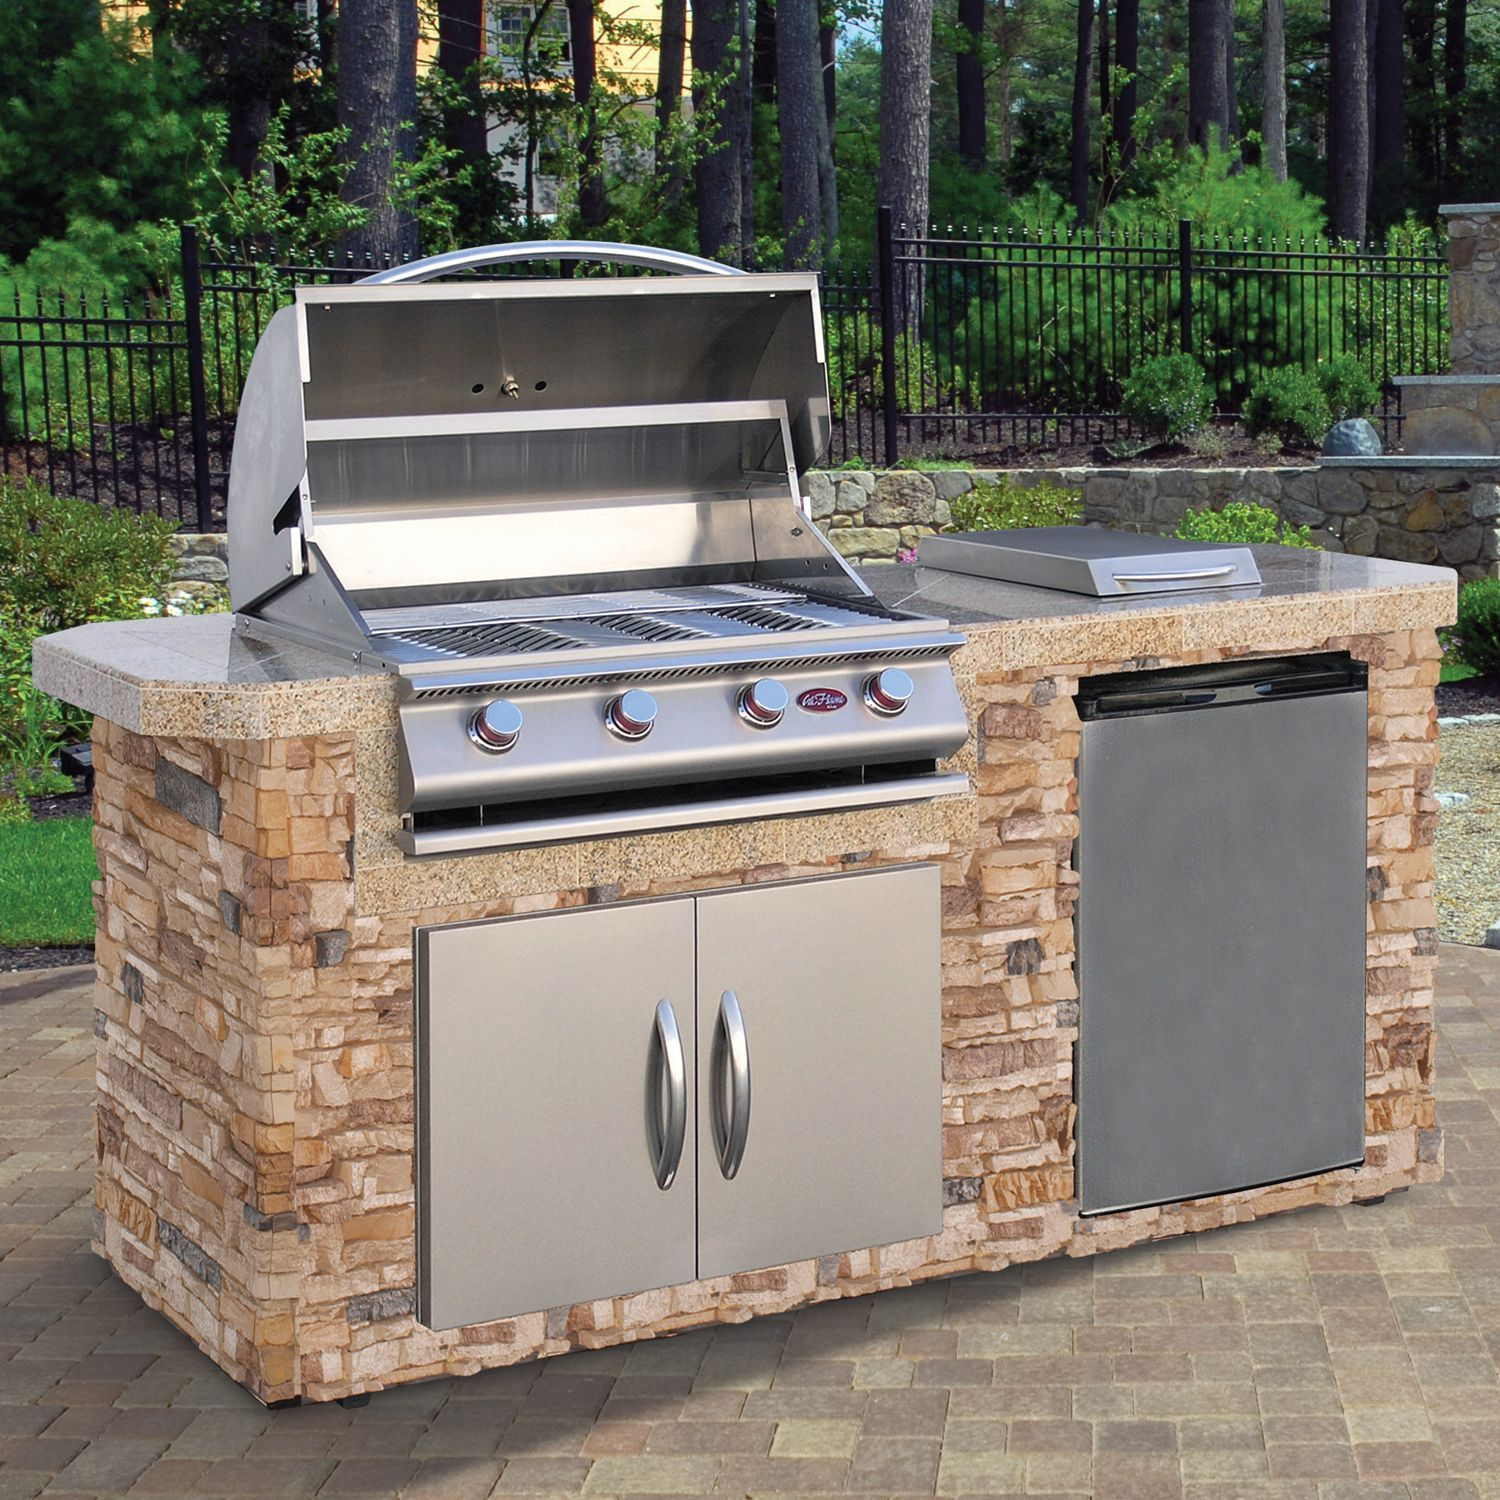 American Spas Cal Flame Stone Stainless Steel 7 Foot 4 Burner Grill